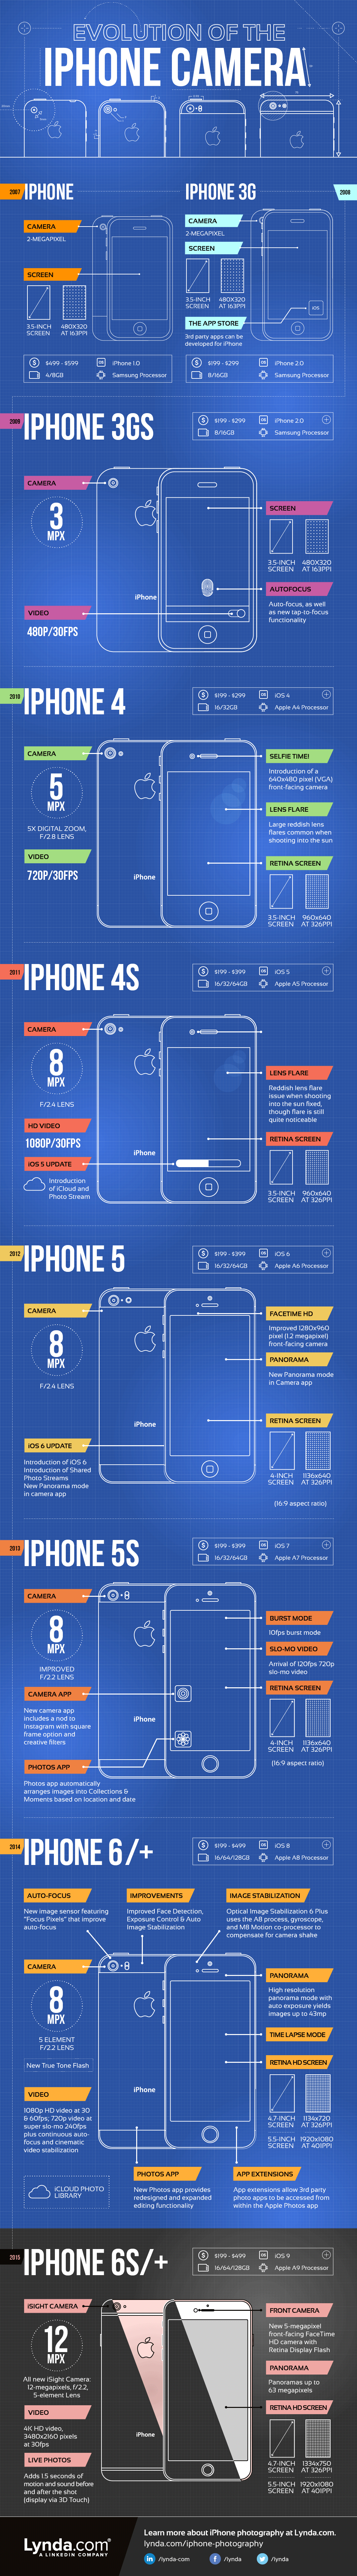 Evolution of the iPhone Camera #infographic